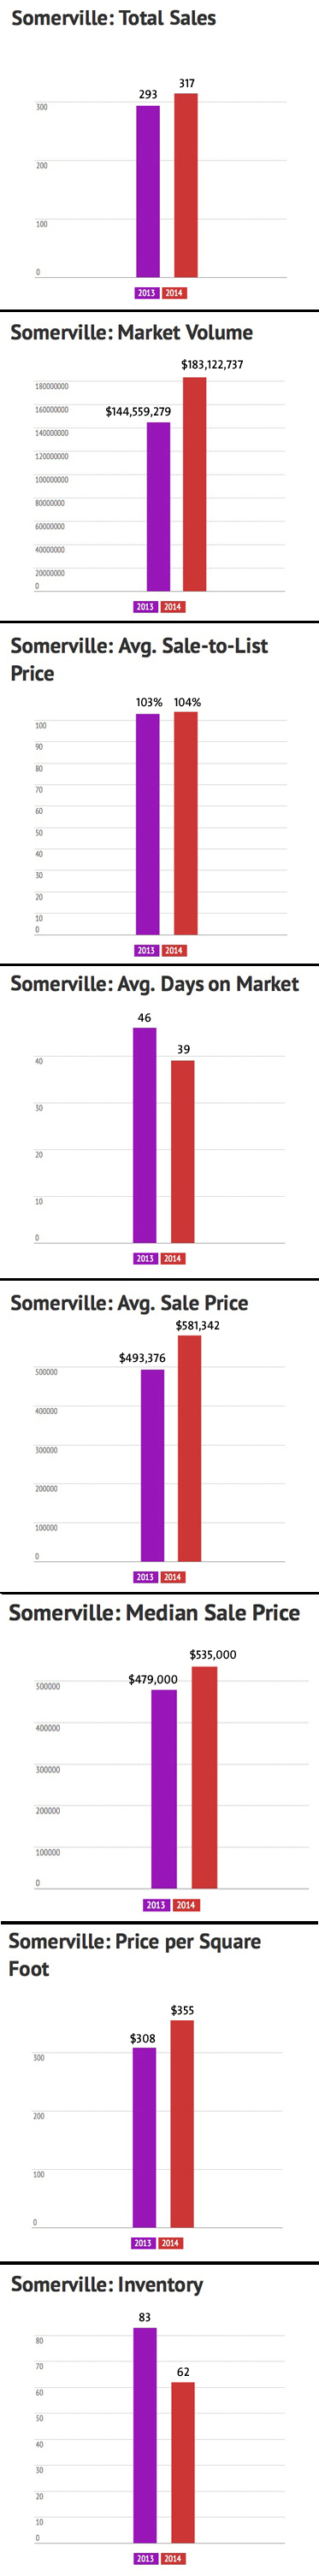 Somerville June 2014 Market Stats